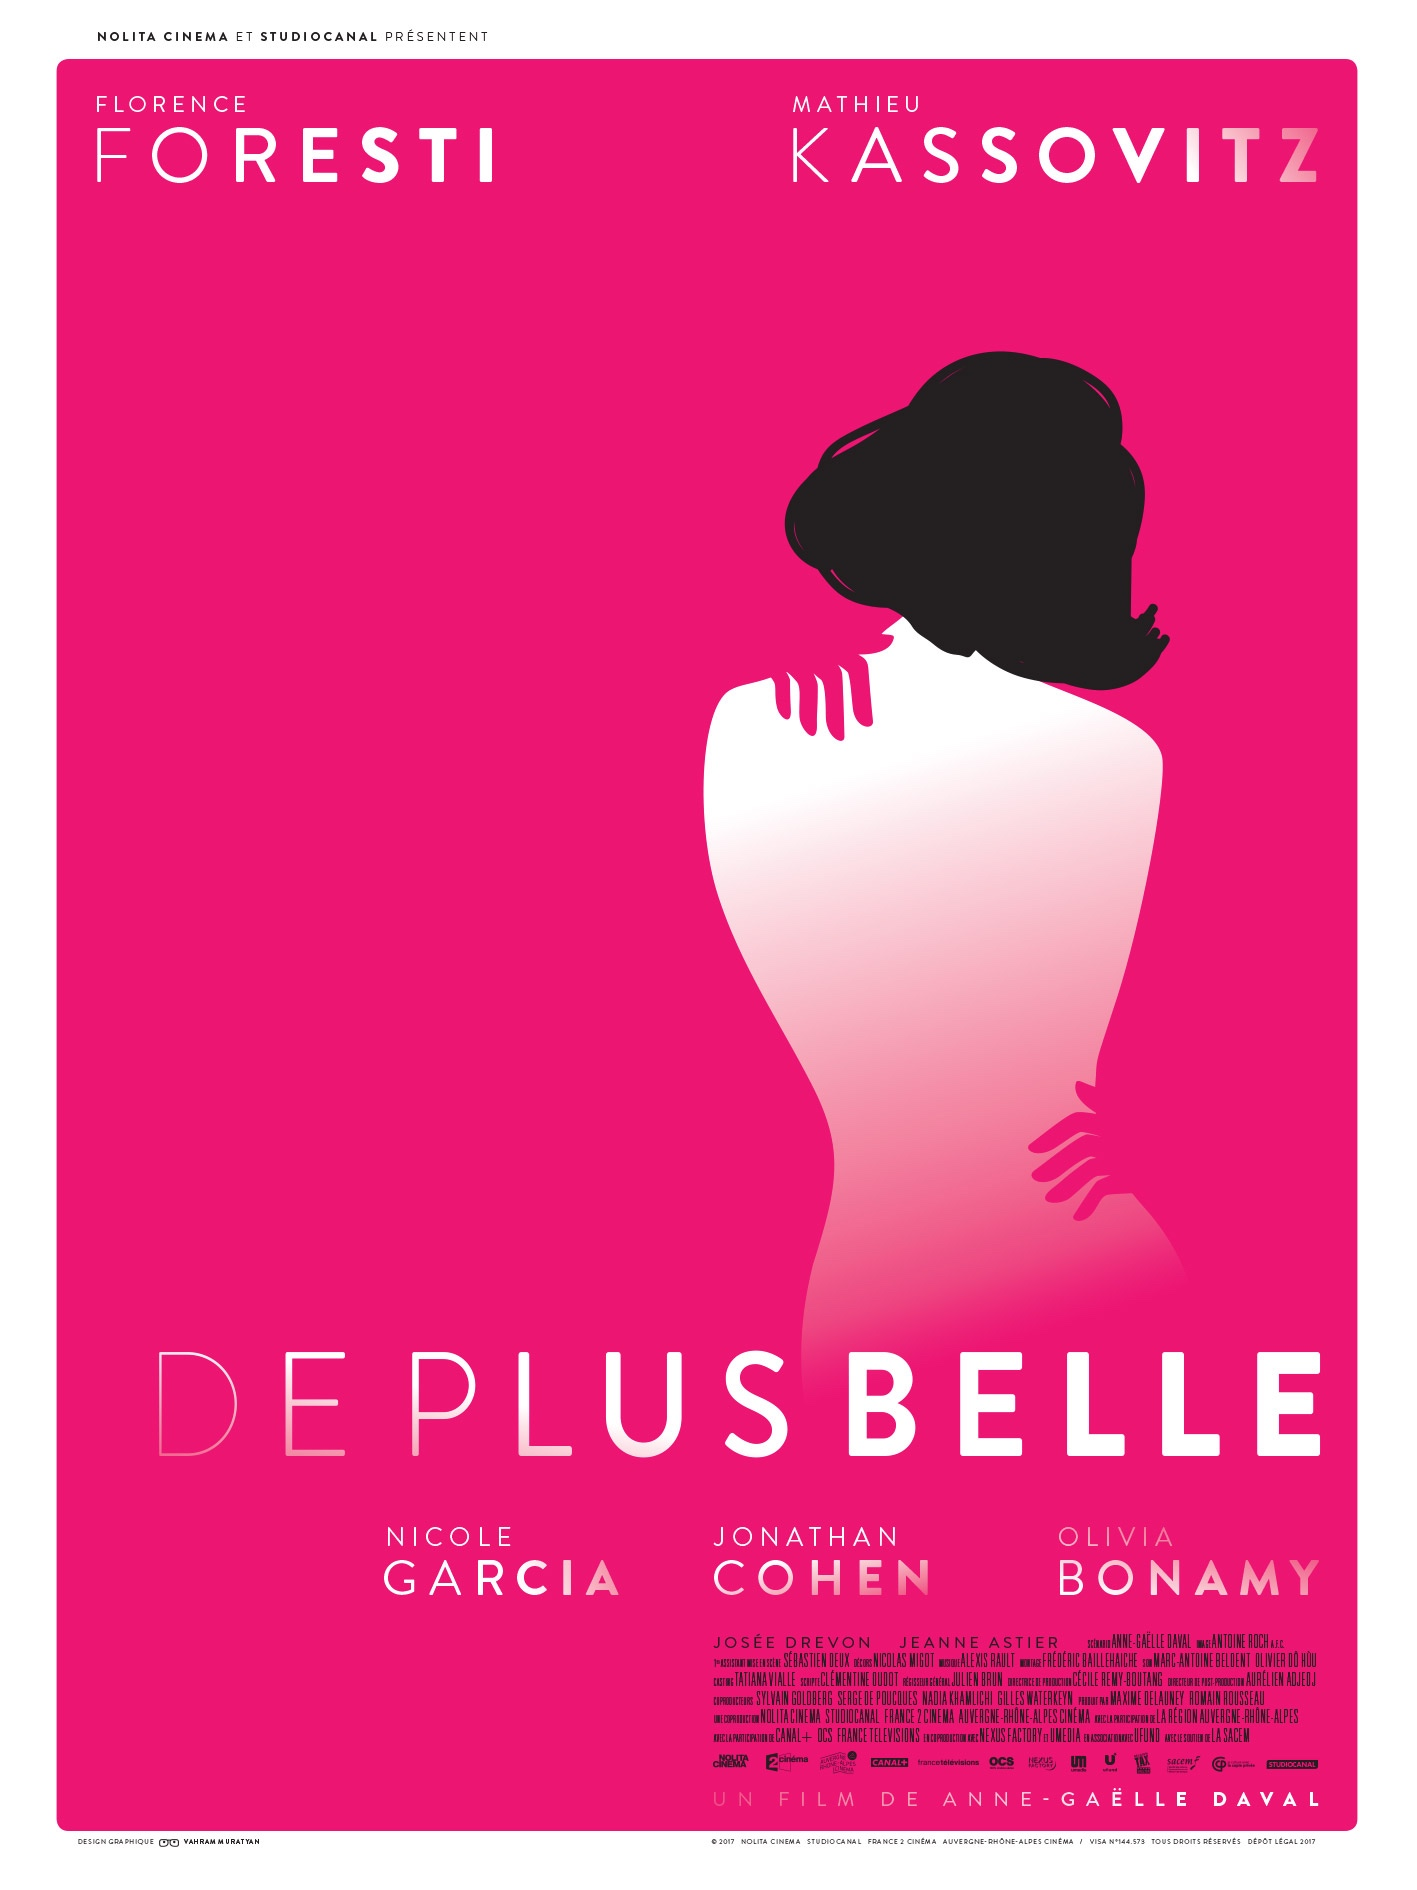 De Plus Belle (Ladies). Movie poster design.